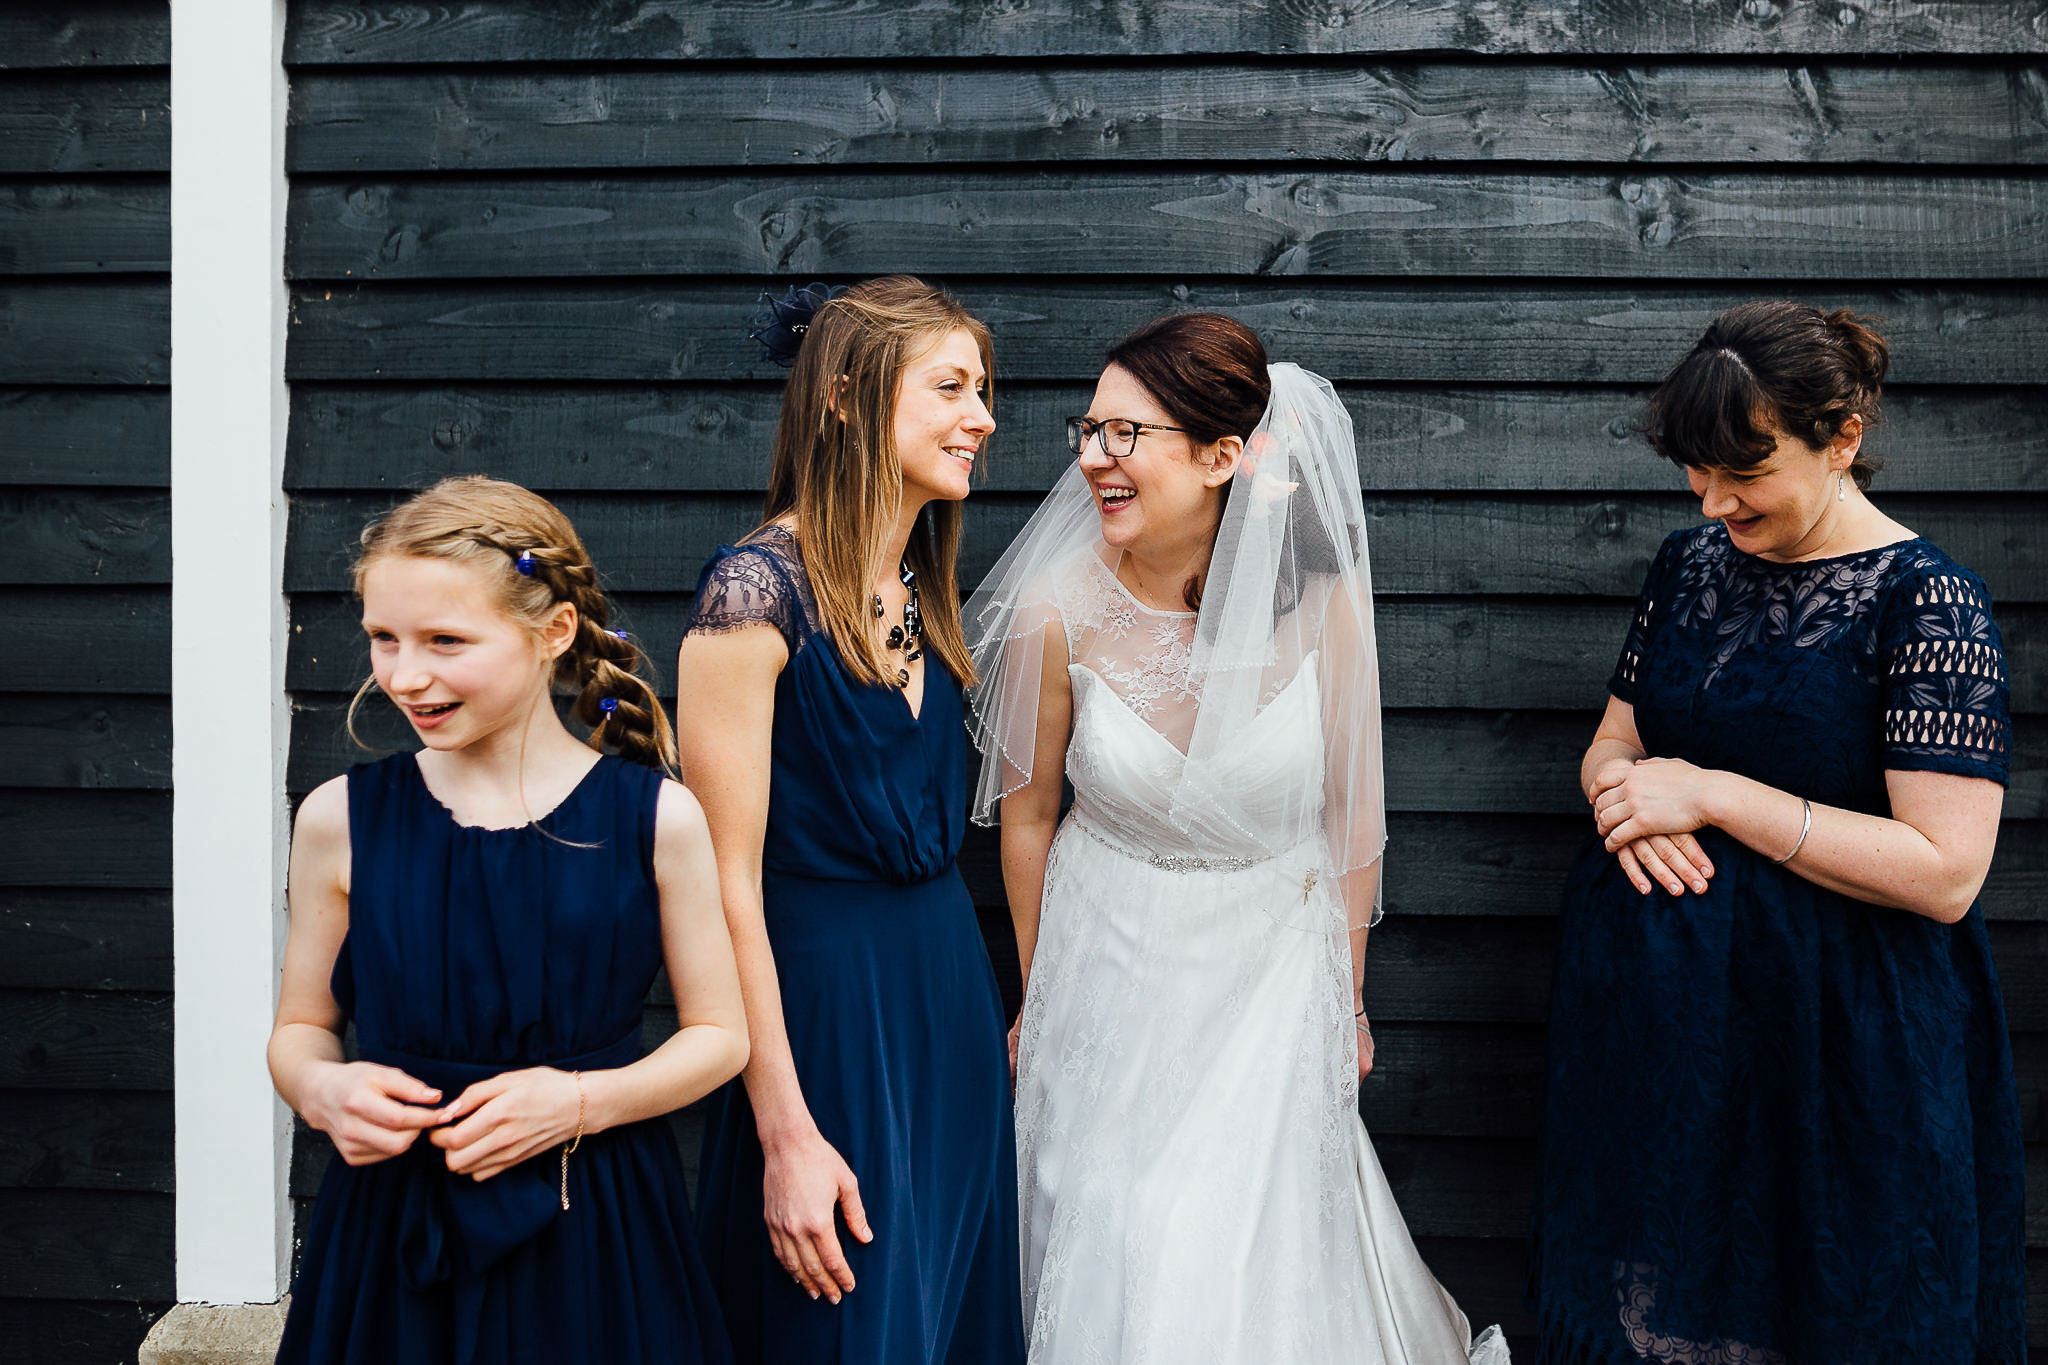 fun candid unposed wedding photography in london